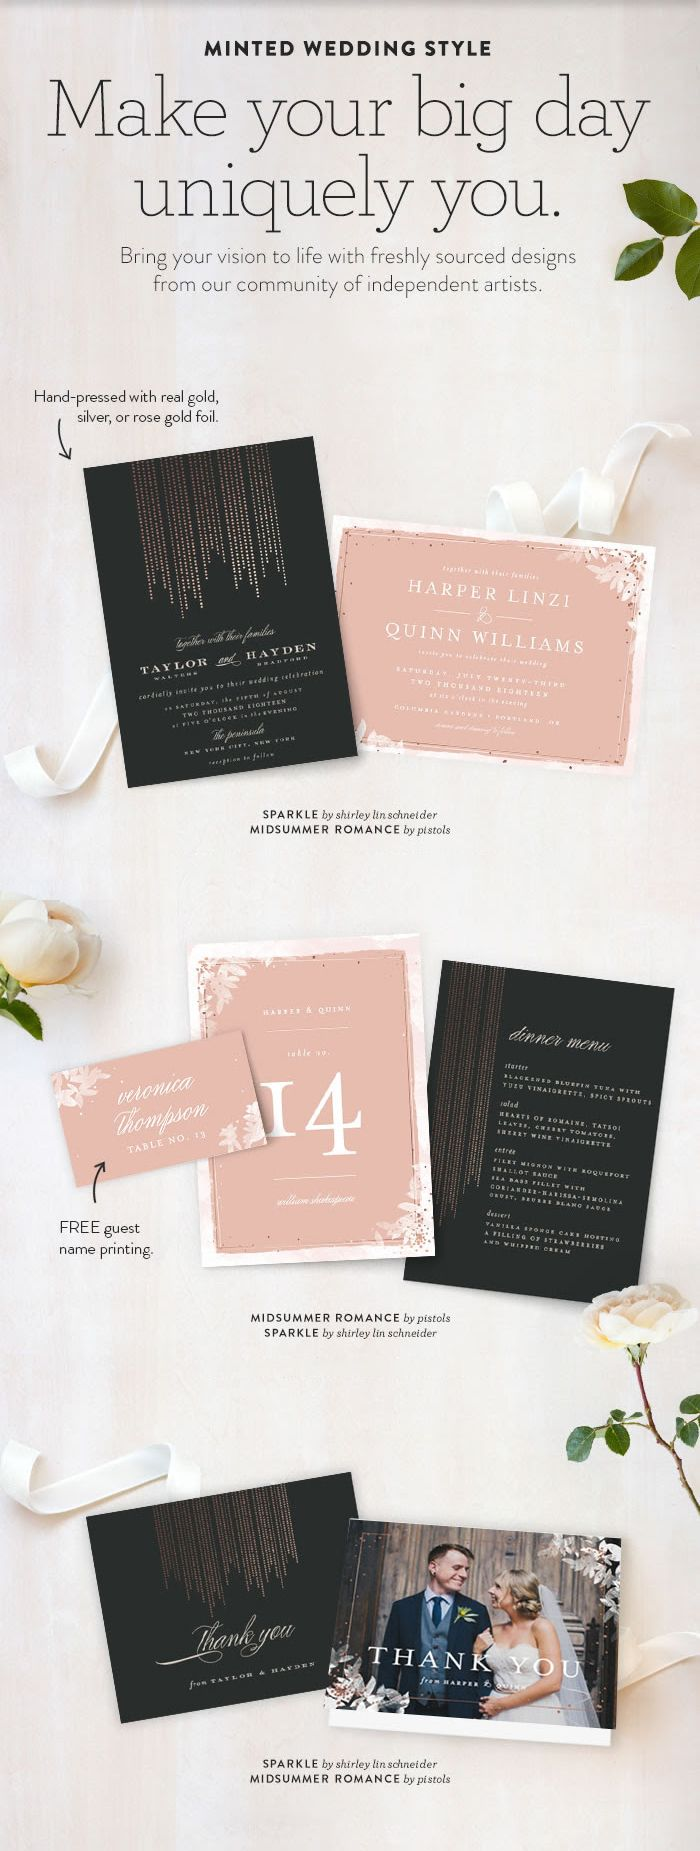 how to put guest names on wedding invitations%0A New Customer Offer  Enjoy off wedding invitations  Shop unique wedding  invites from independent artists on Minted